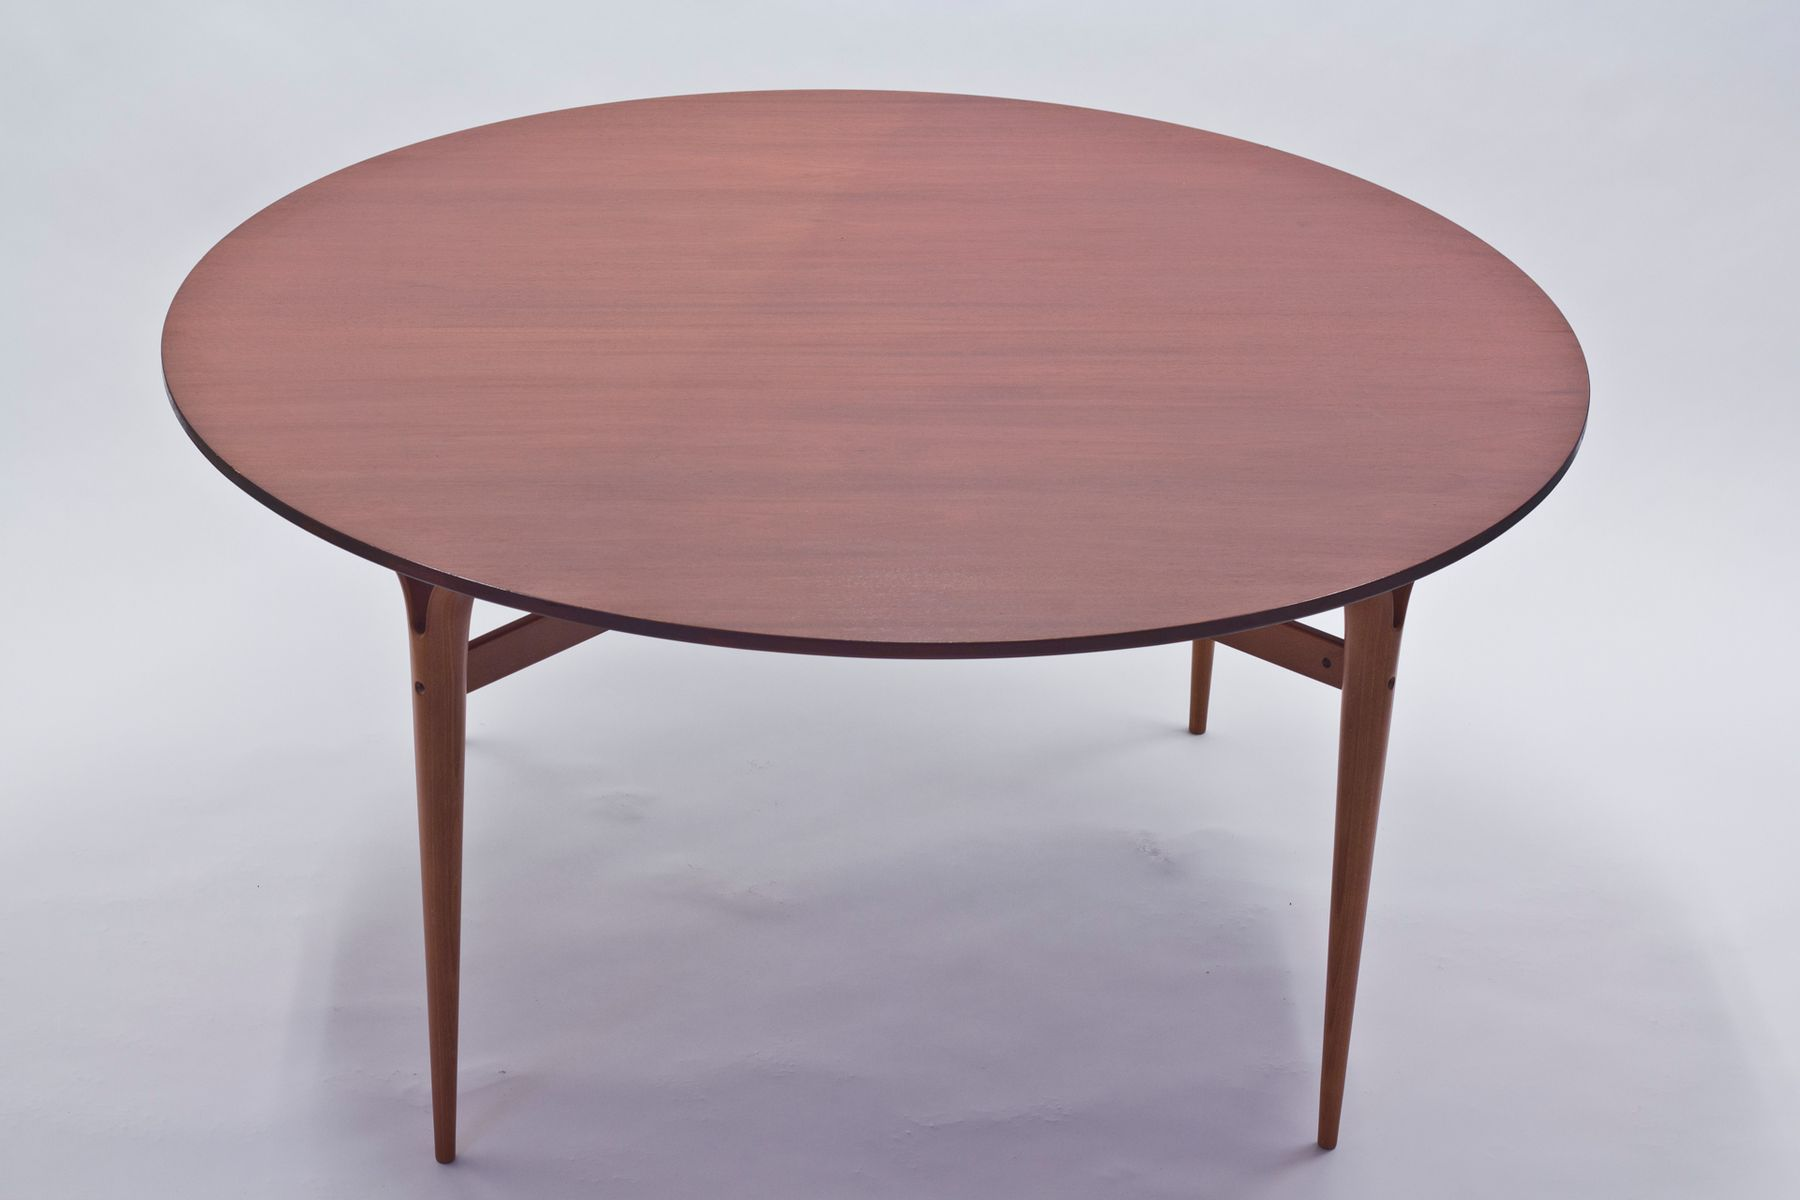 Round Mahogany Dining Table Model MI 753 by Bruno Mathsson  : round mahogany dining table model mi 753 by bruno mathsson for dux 2 from www.pamono.com size 1800 x 1200 jpeg 64kB